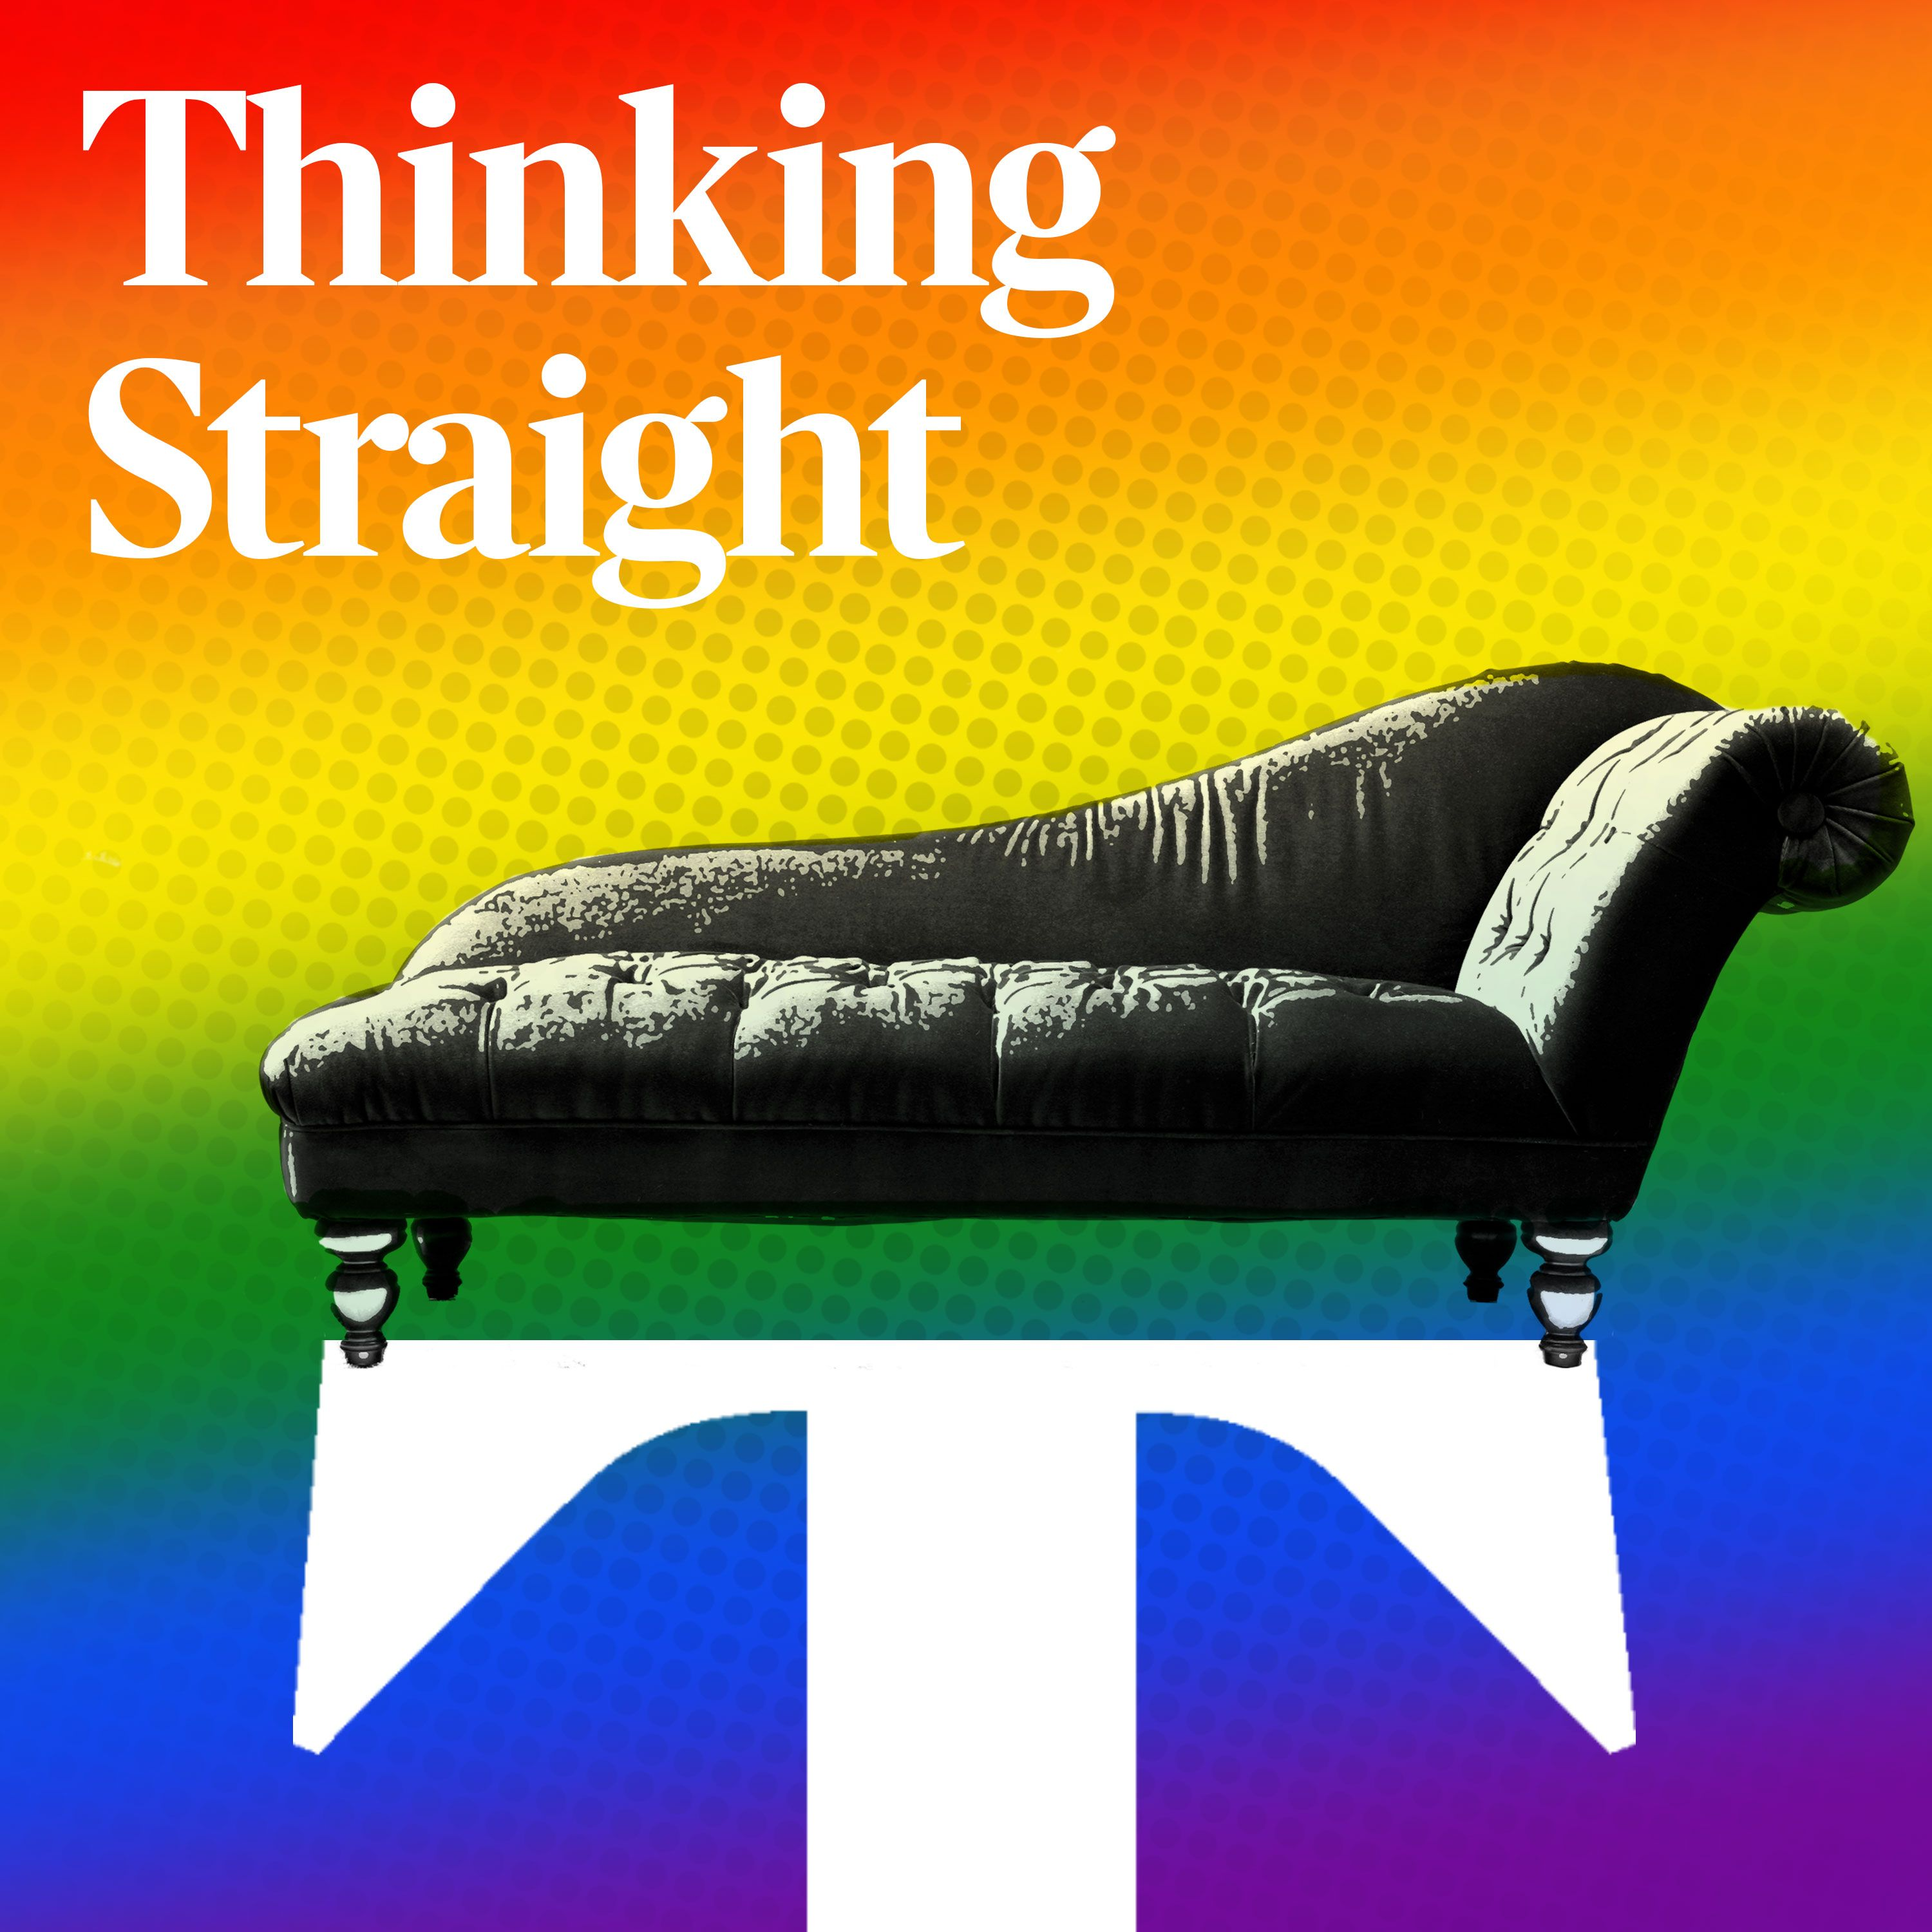 Coming soon: Thinking Straight